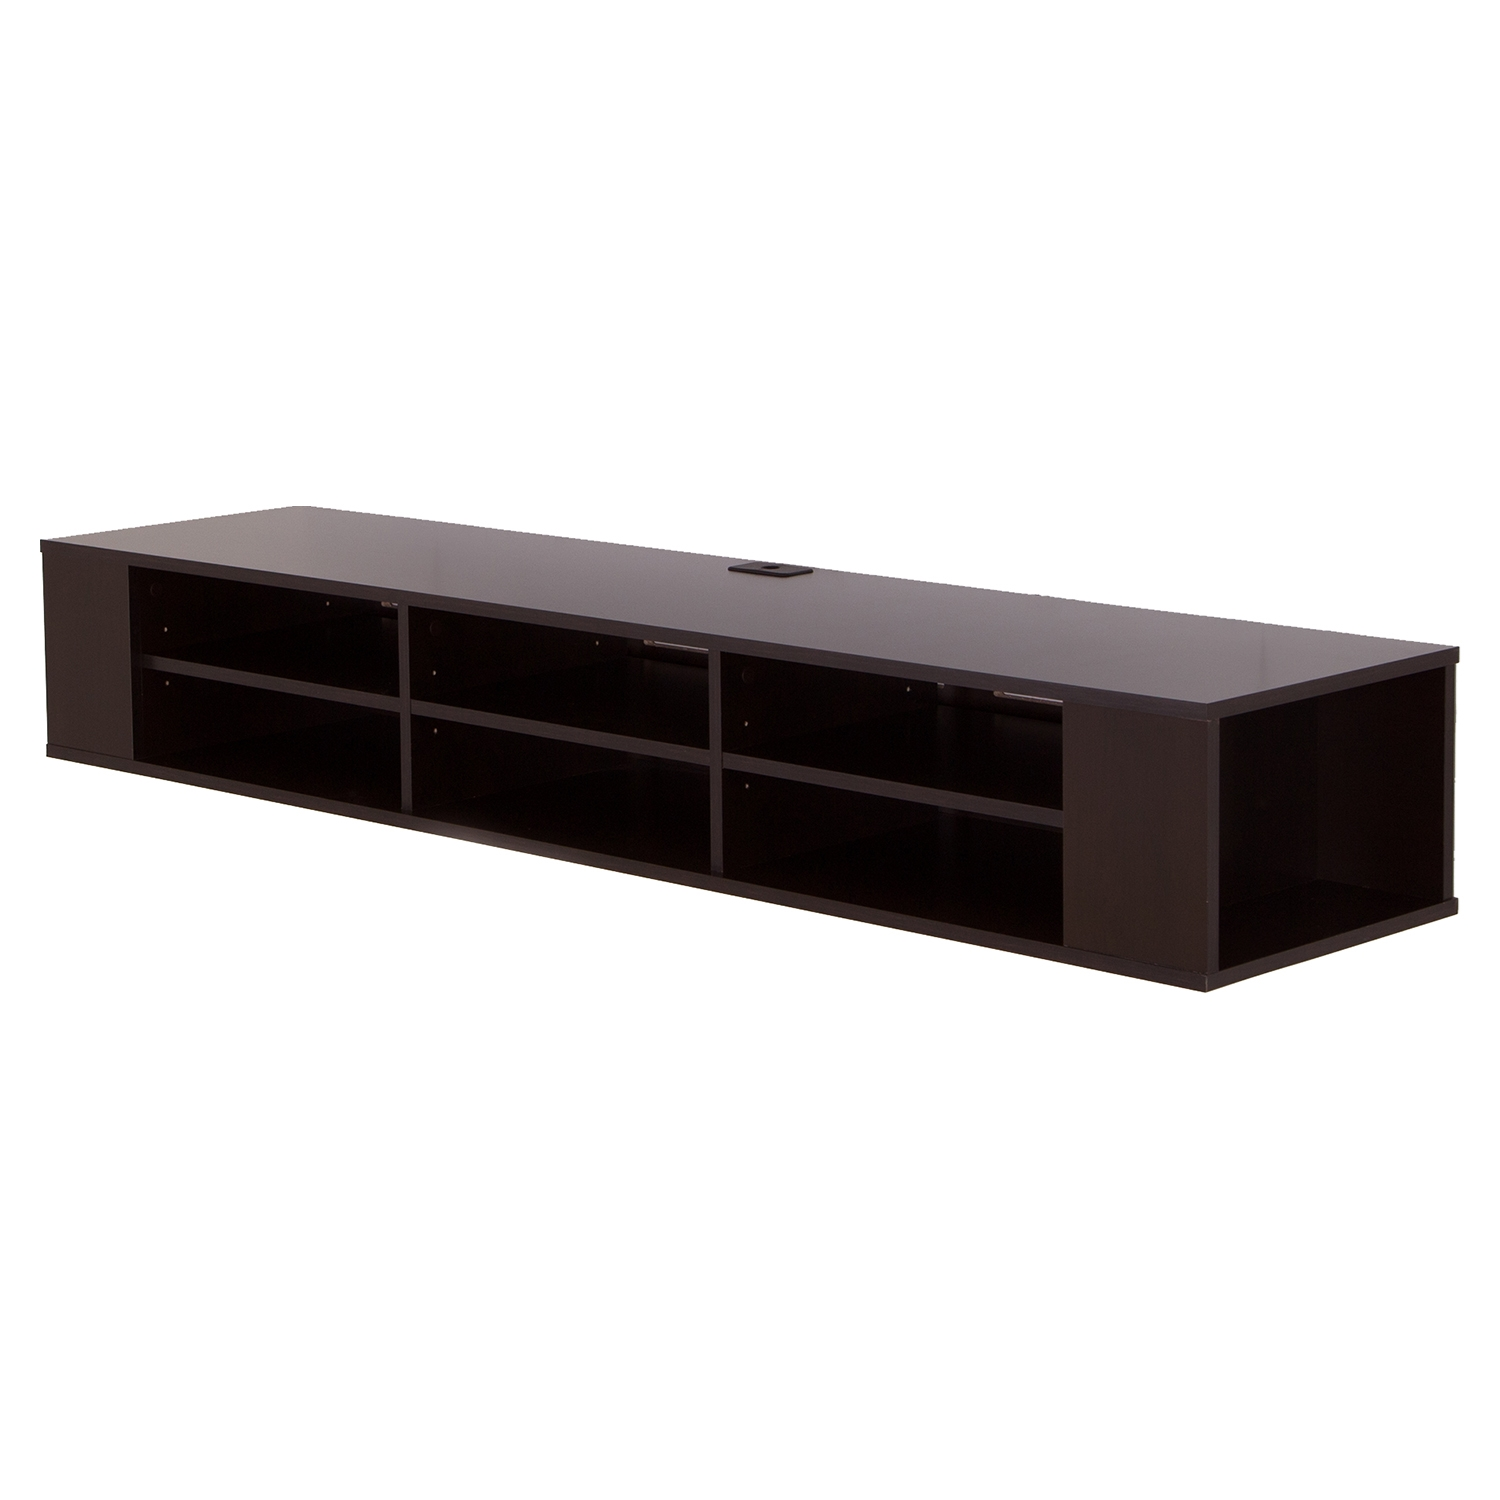 "City Life 66"" Wide Wall Mounted Media Console - Chocolate"